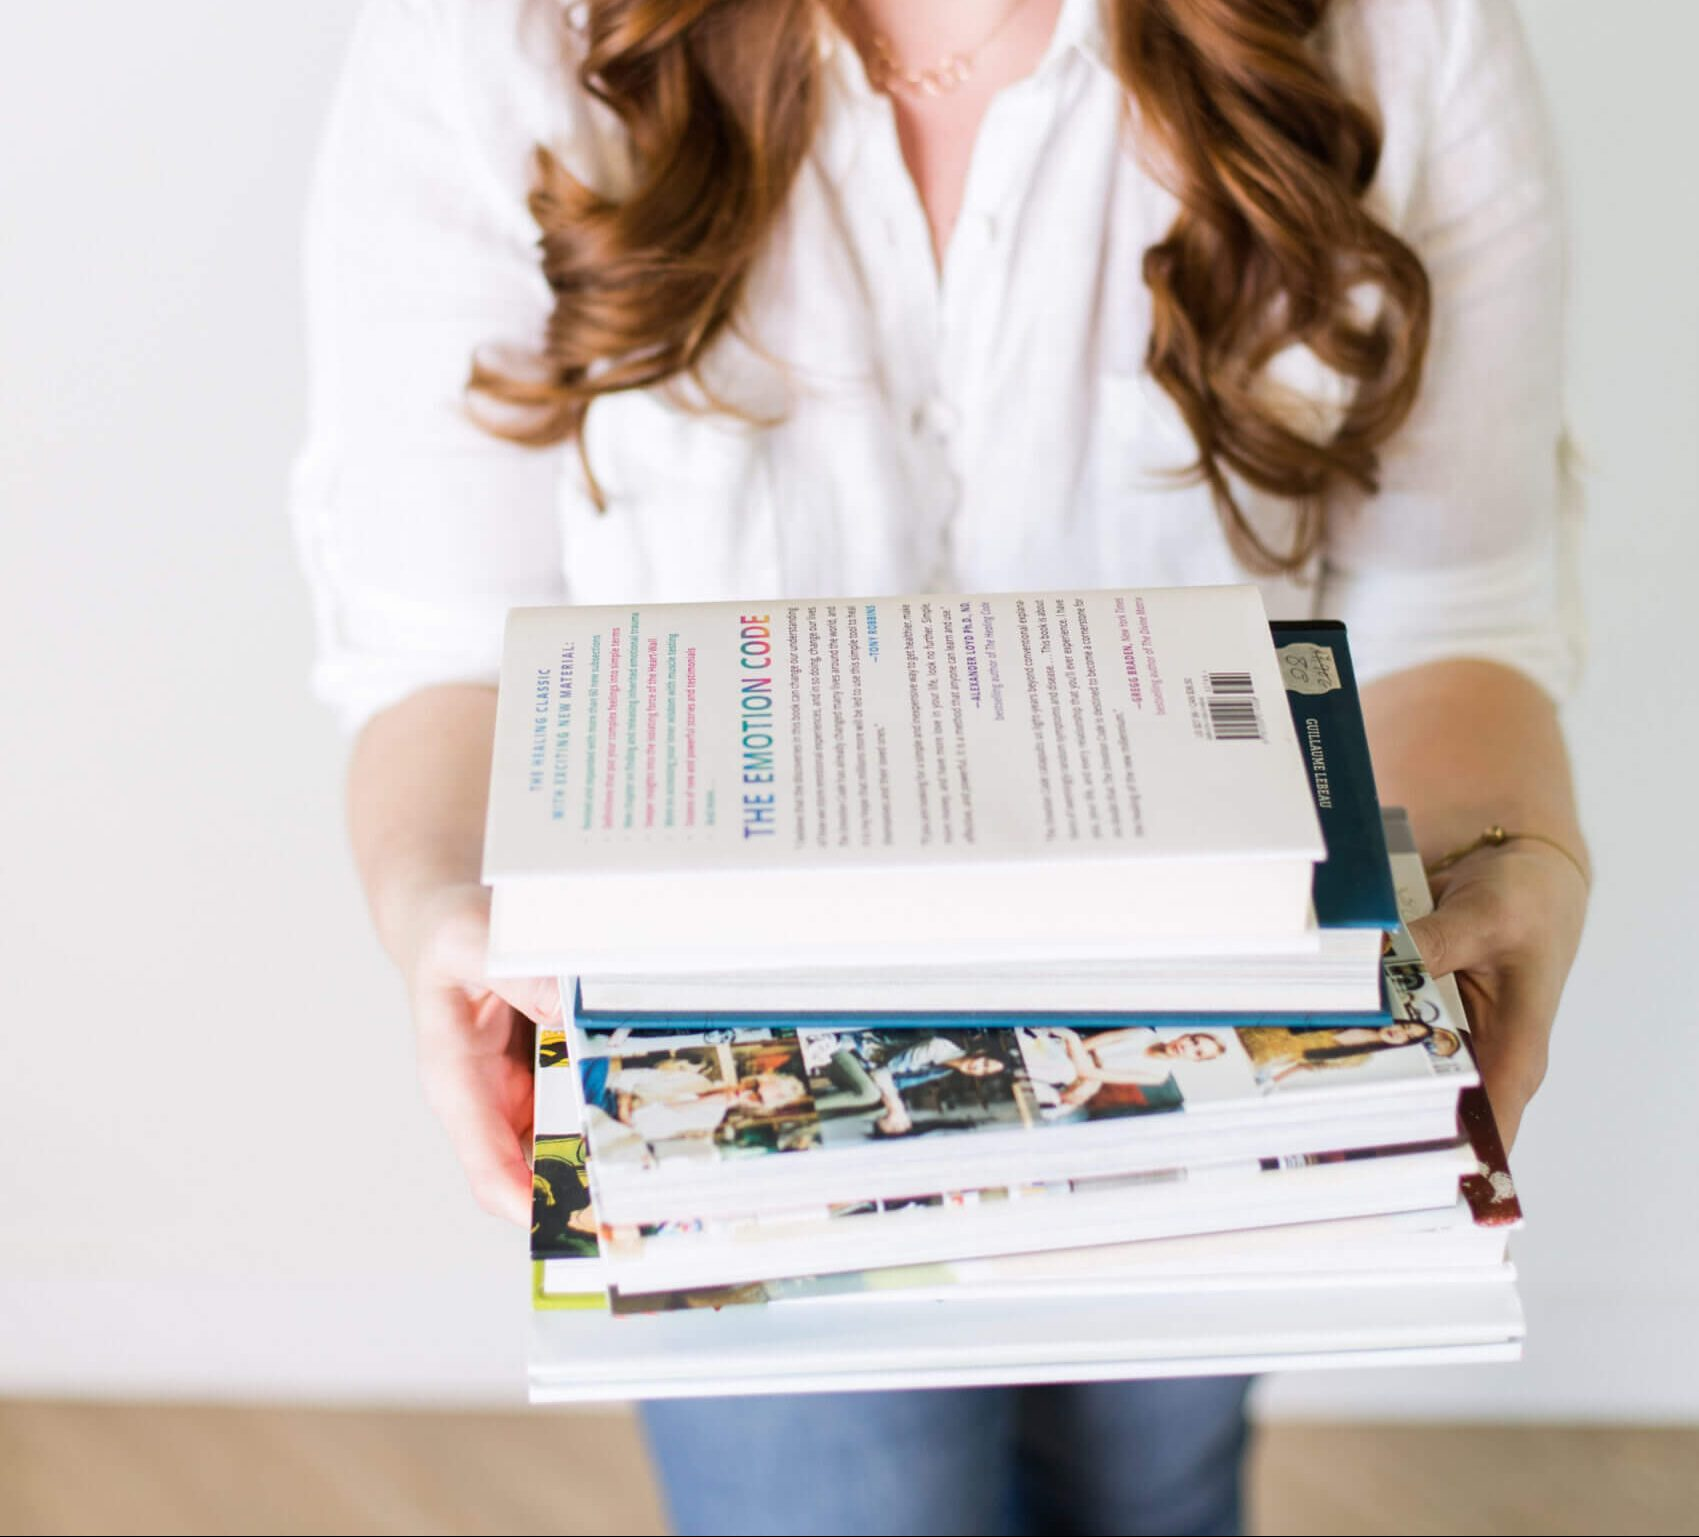 Take your business to the next level with my top 9 book recommendations to help you grow your business.